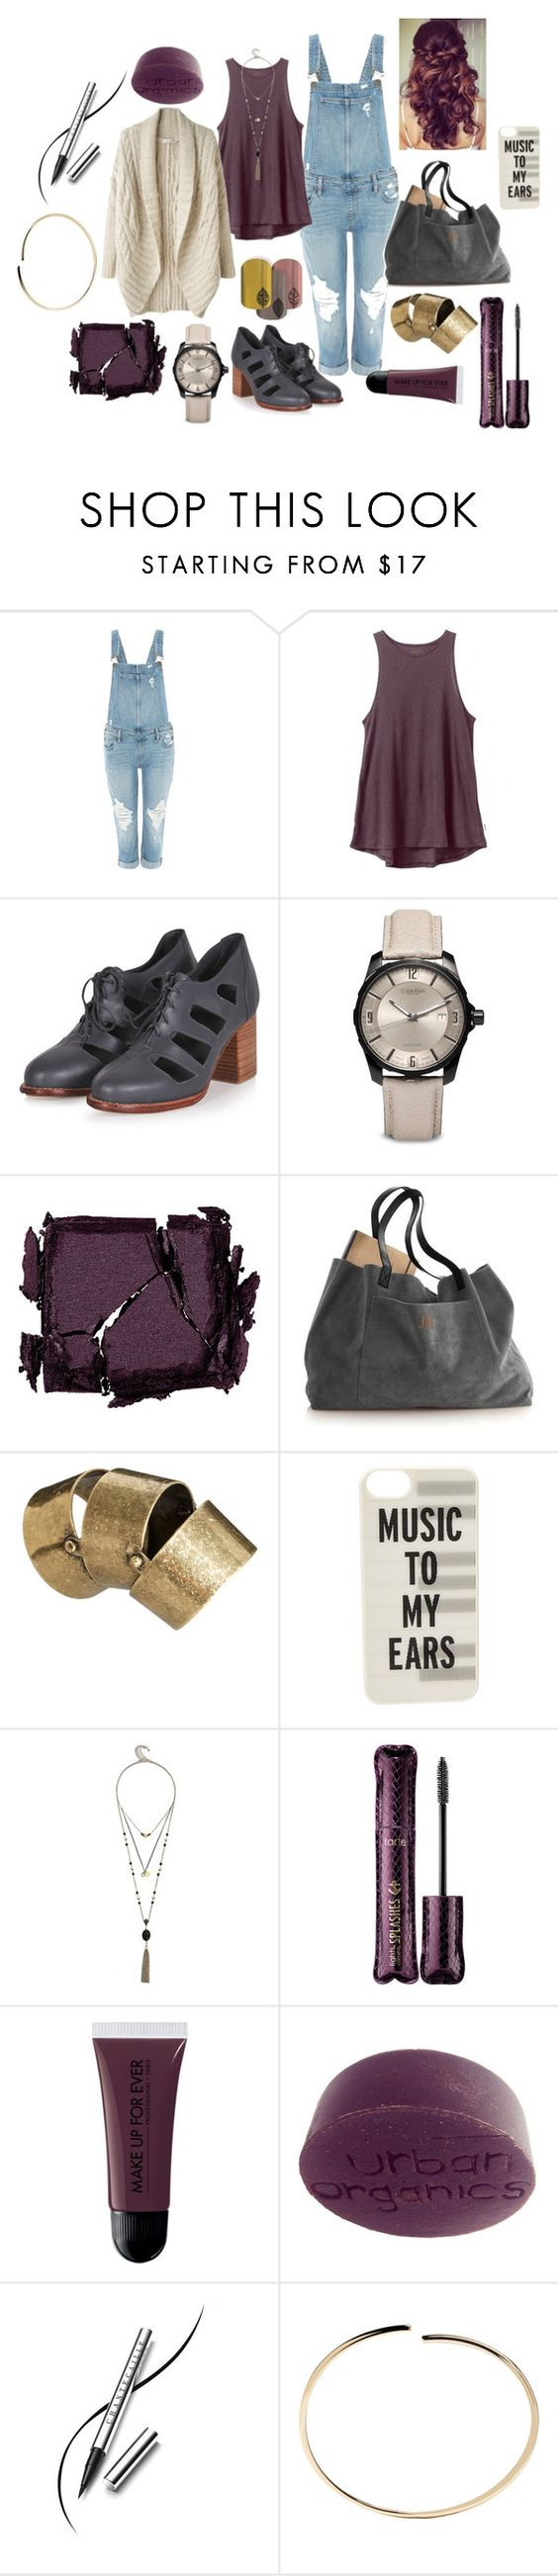 """""""Sleepless"""" by shannon-klement ❤ liked on Polyvore featuring Paige Denim, RVCA, Tsumori Chisato, Calvin Klein, Surratt, Just Acces, Kate Spade, GUESS, tarte and Chantecaille"""